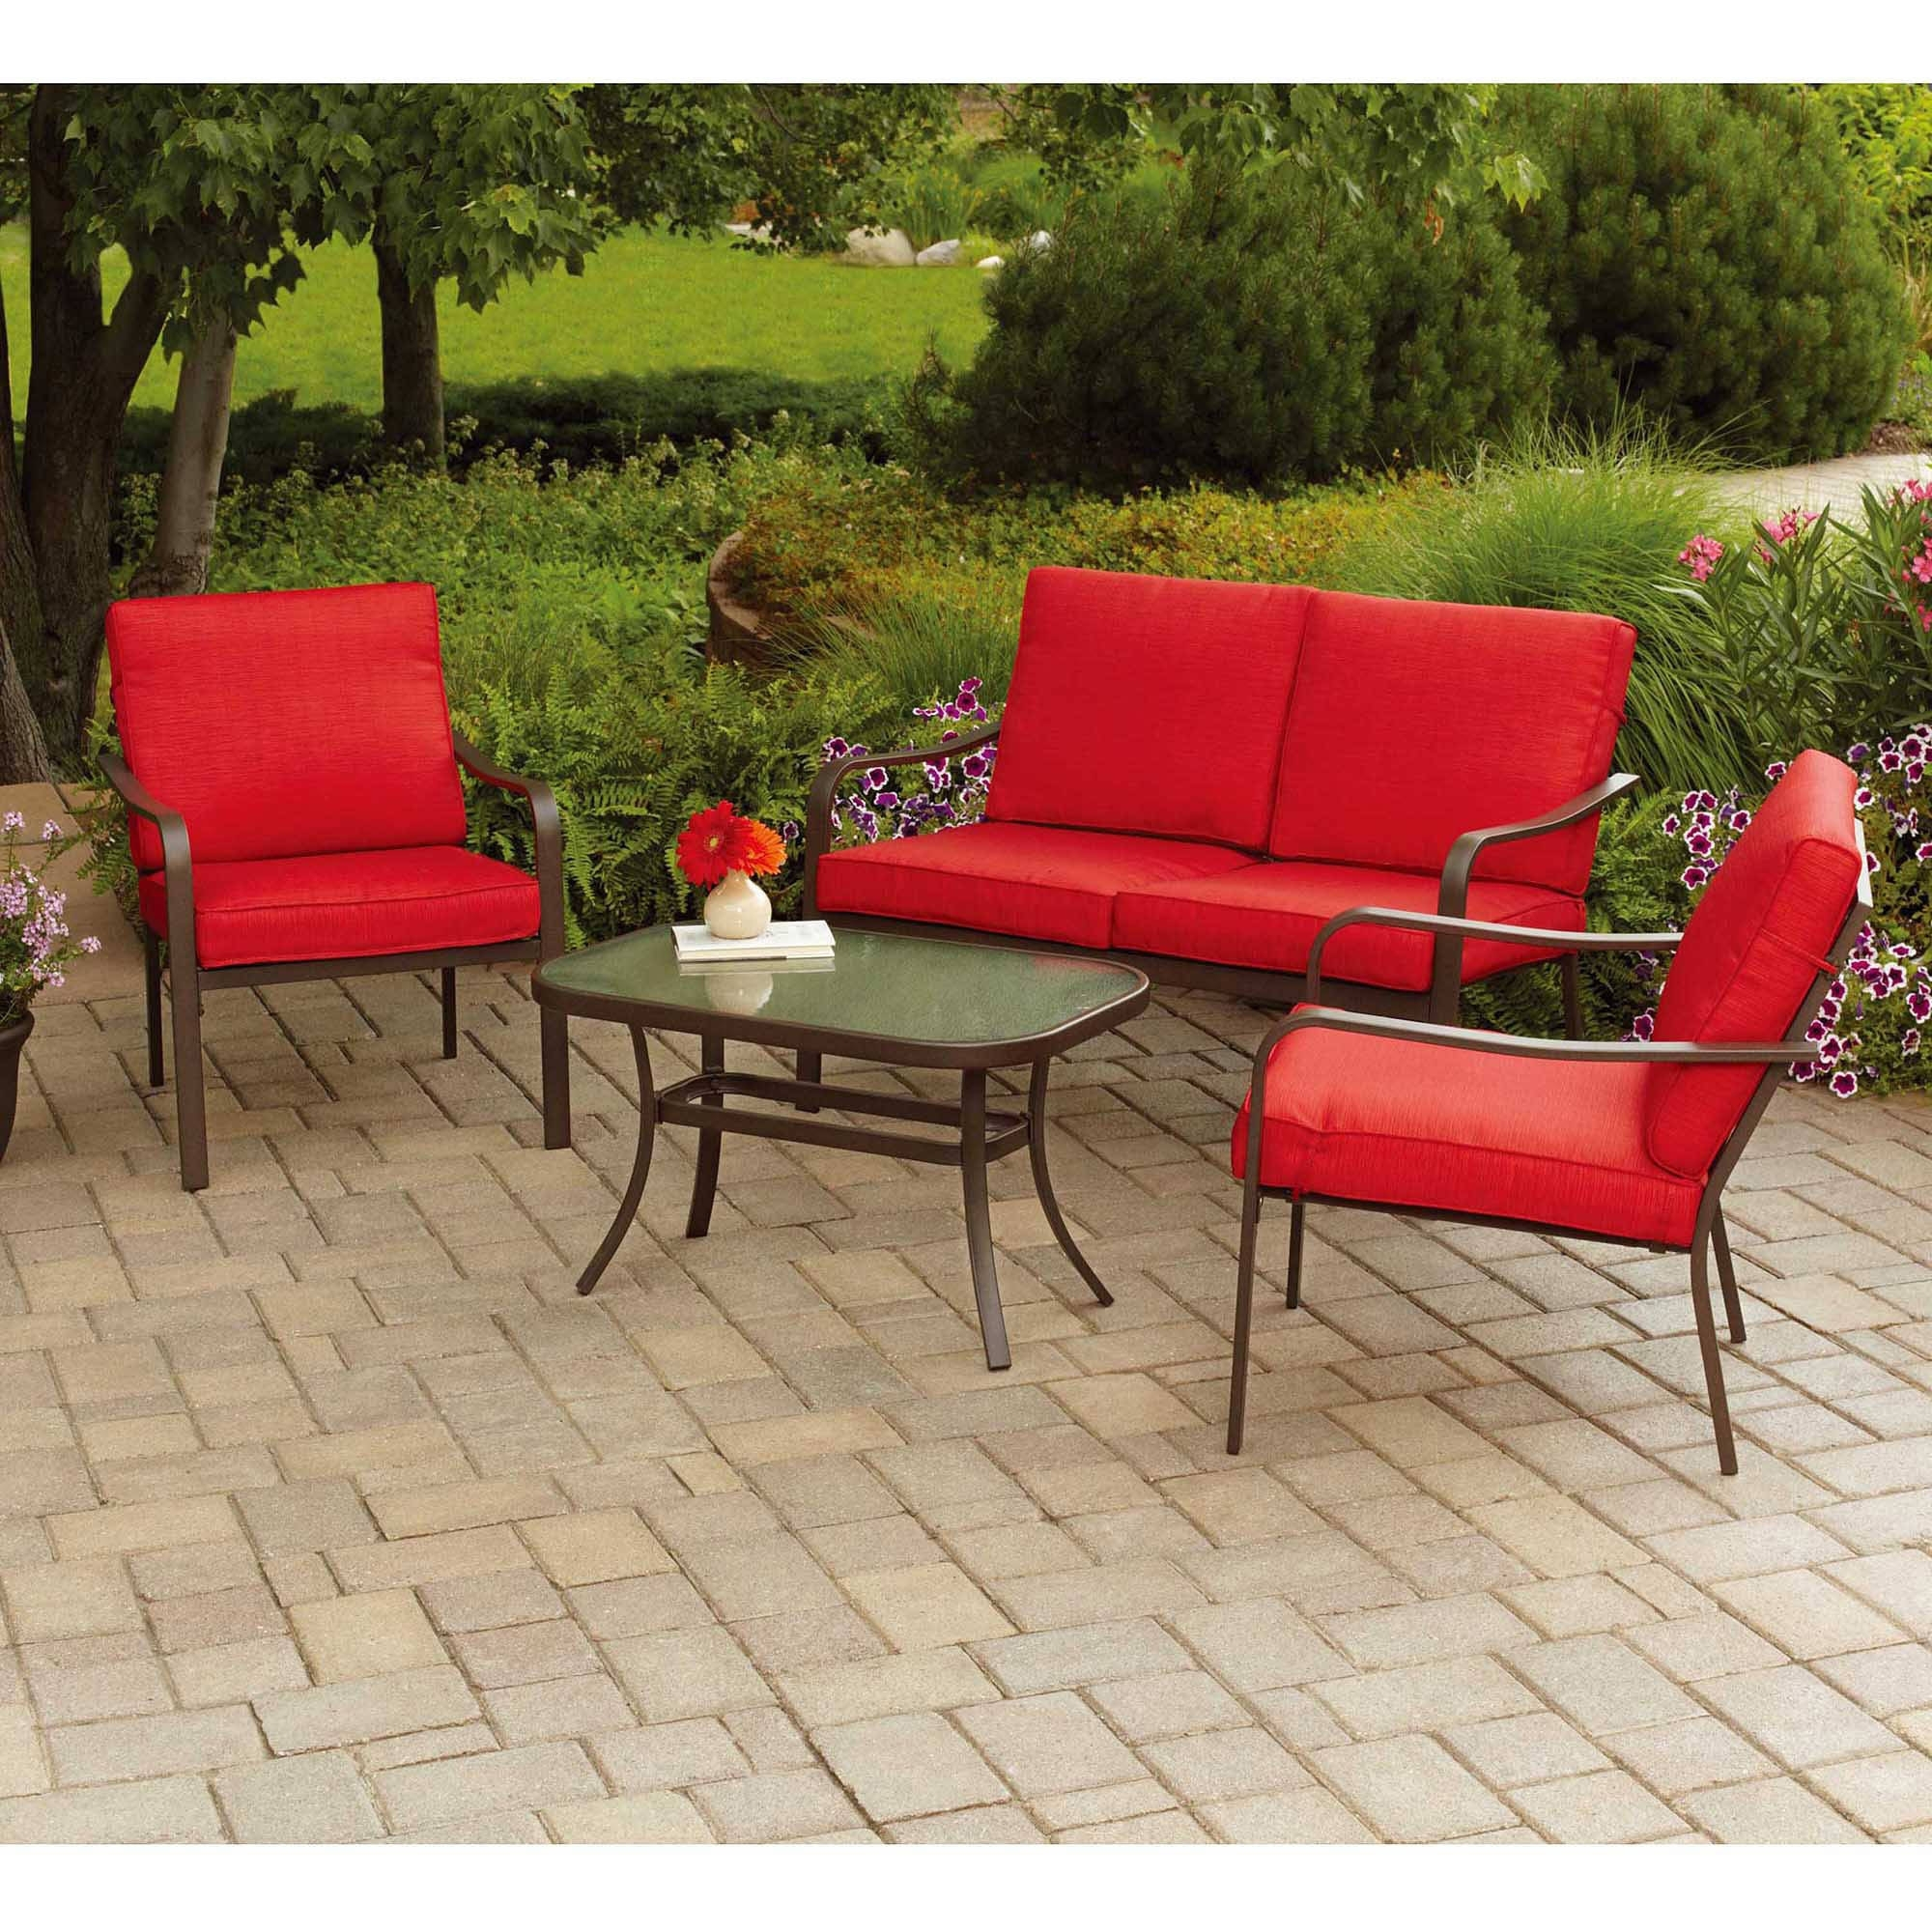 Mainstays Stanton Cushioned 4 Piece Patio Conversation Set, Seats 4 Within Well Known Patio Conversation Sets At Sears (View 4 of 15)